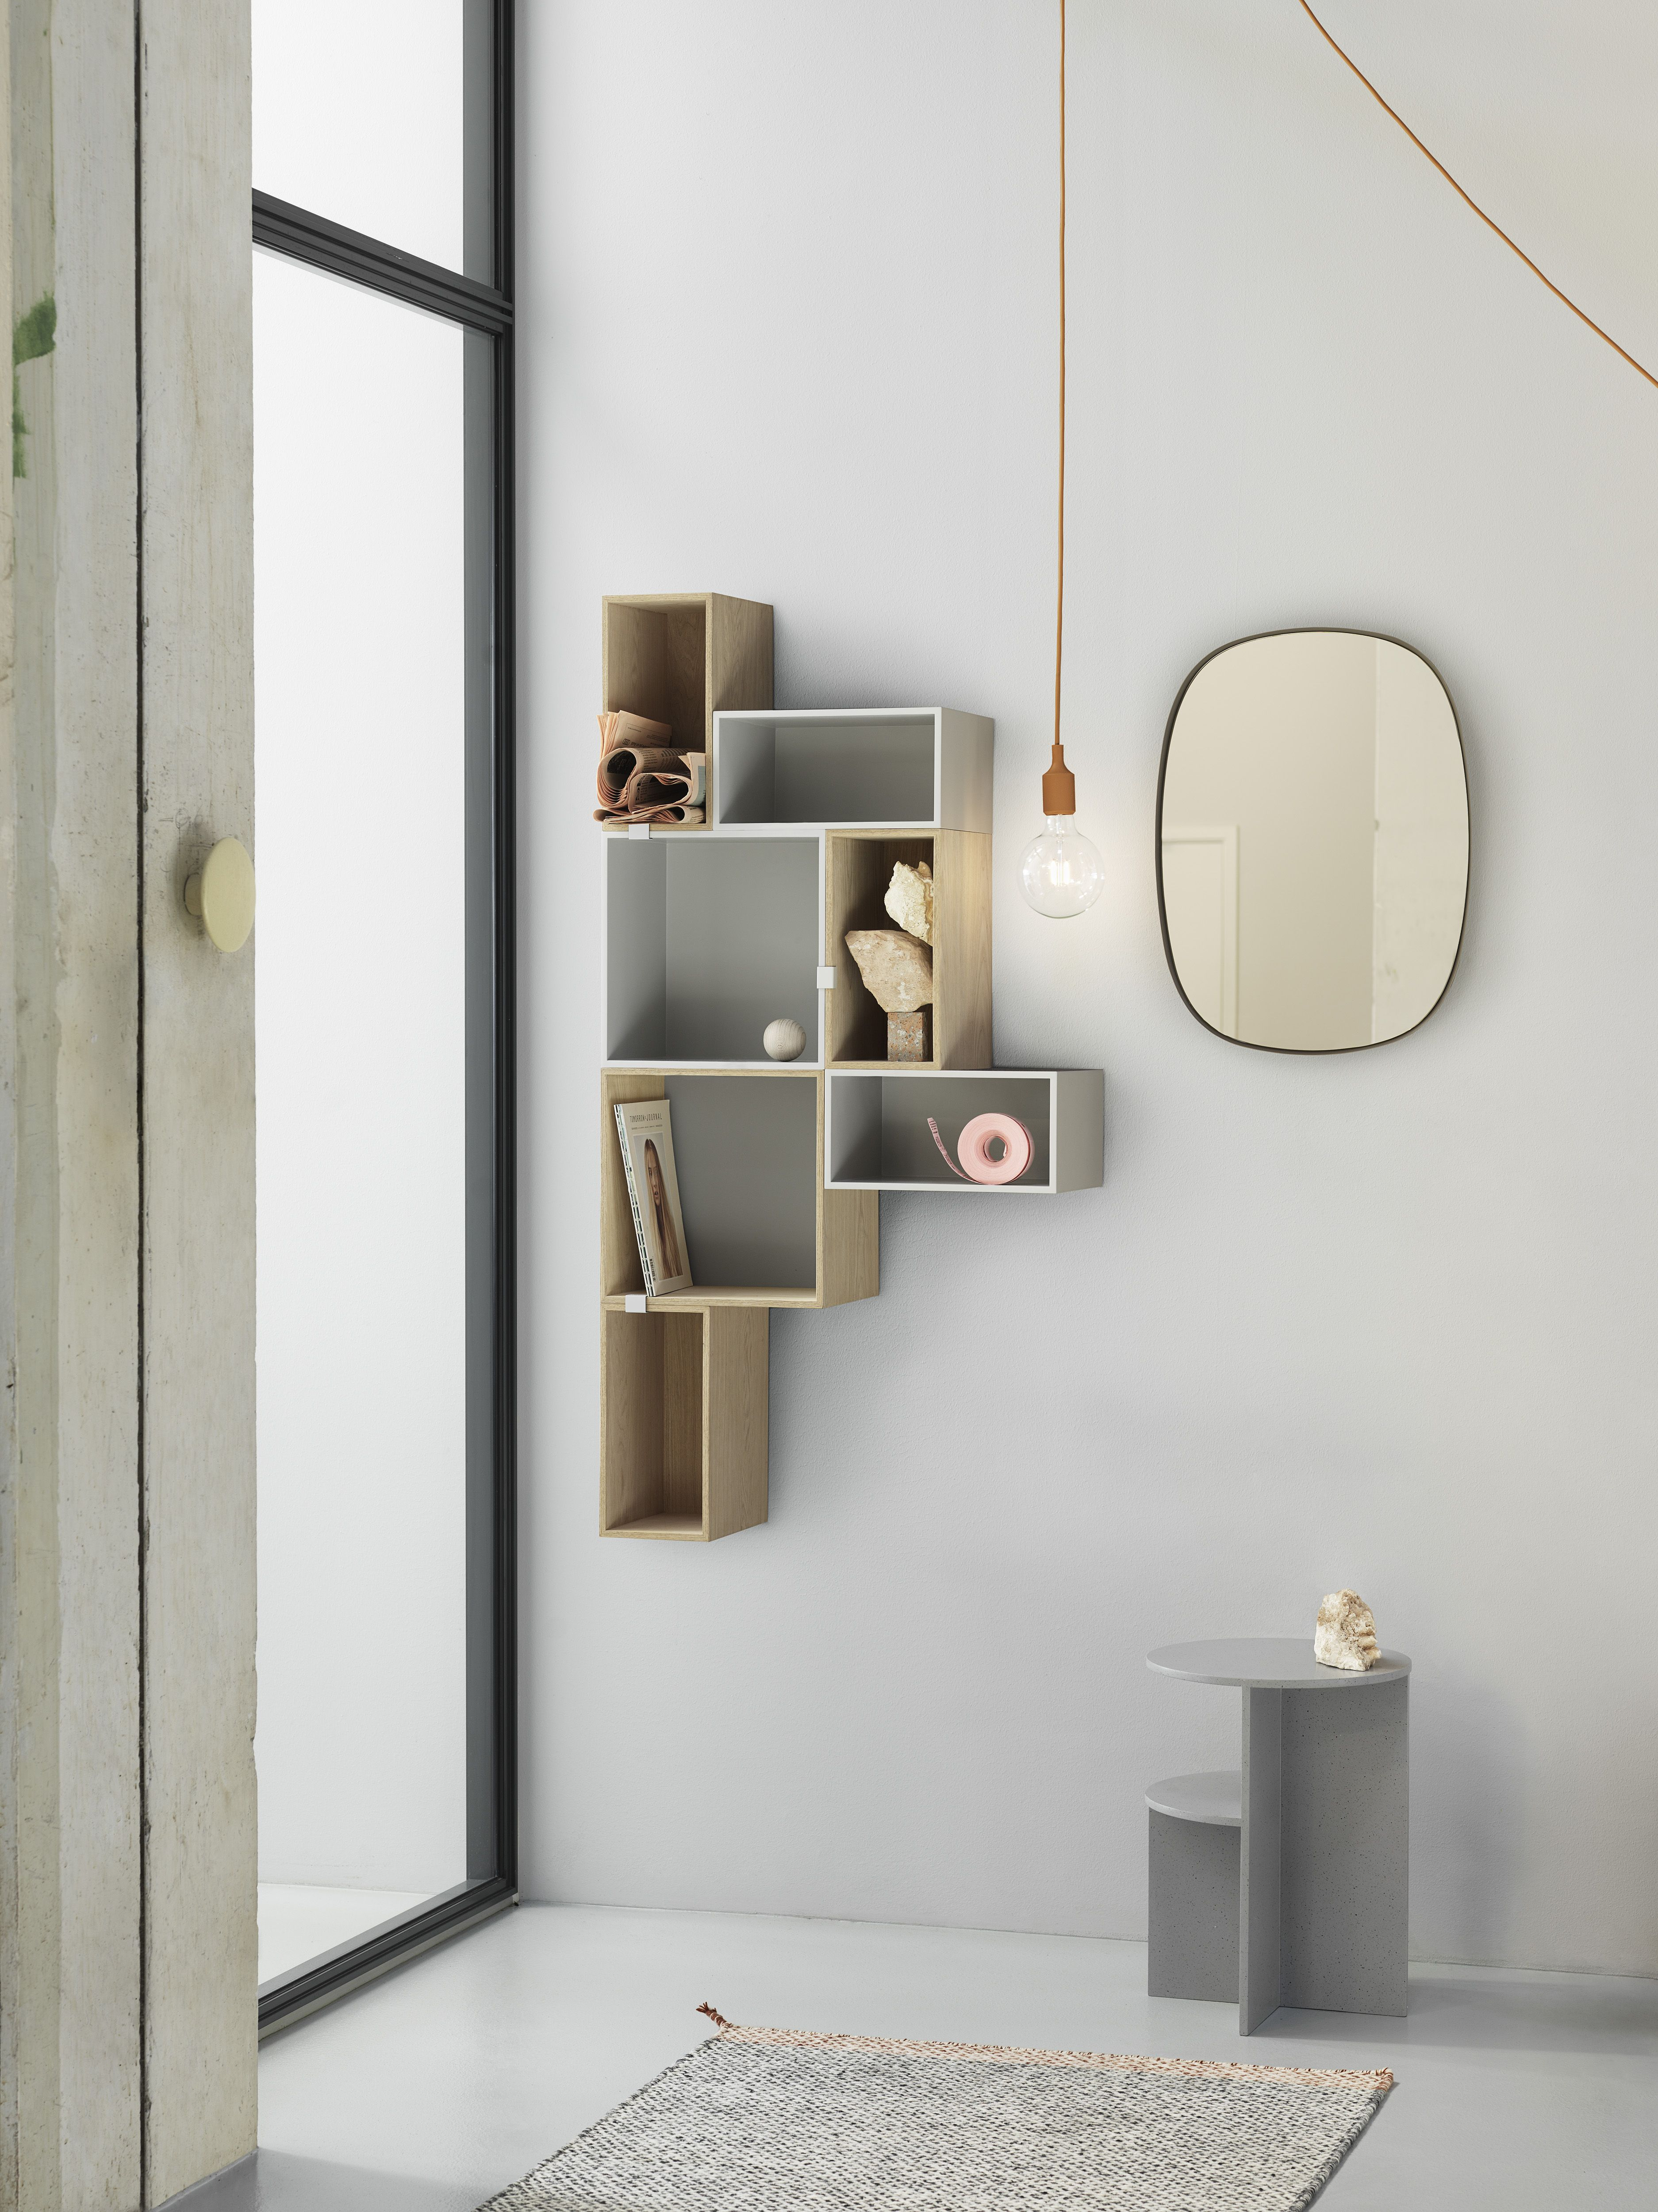 Introducing New Colors Of Muuto S E27 Pendant Lamp There Is Something Humbling About Simple Objects One Of These Is The Icon Small Spaces Interior Home Decor